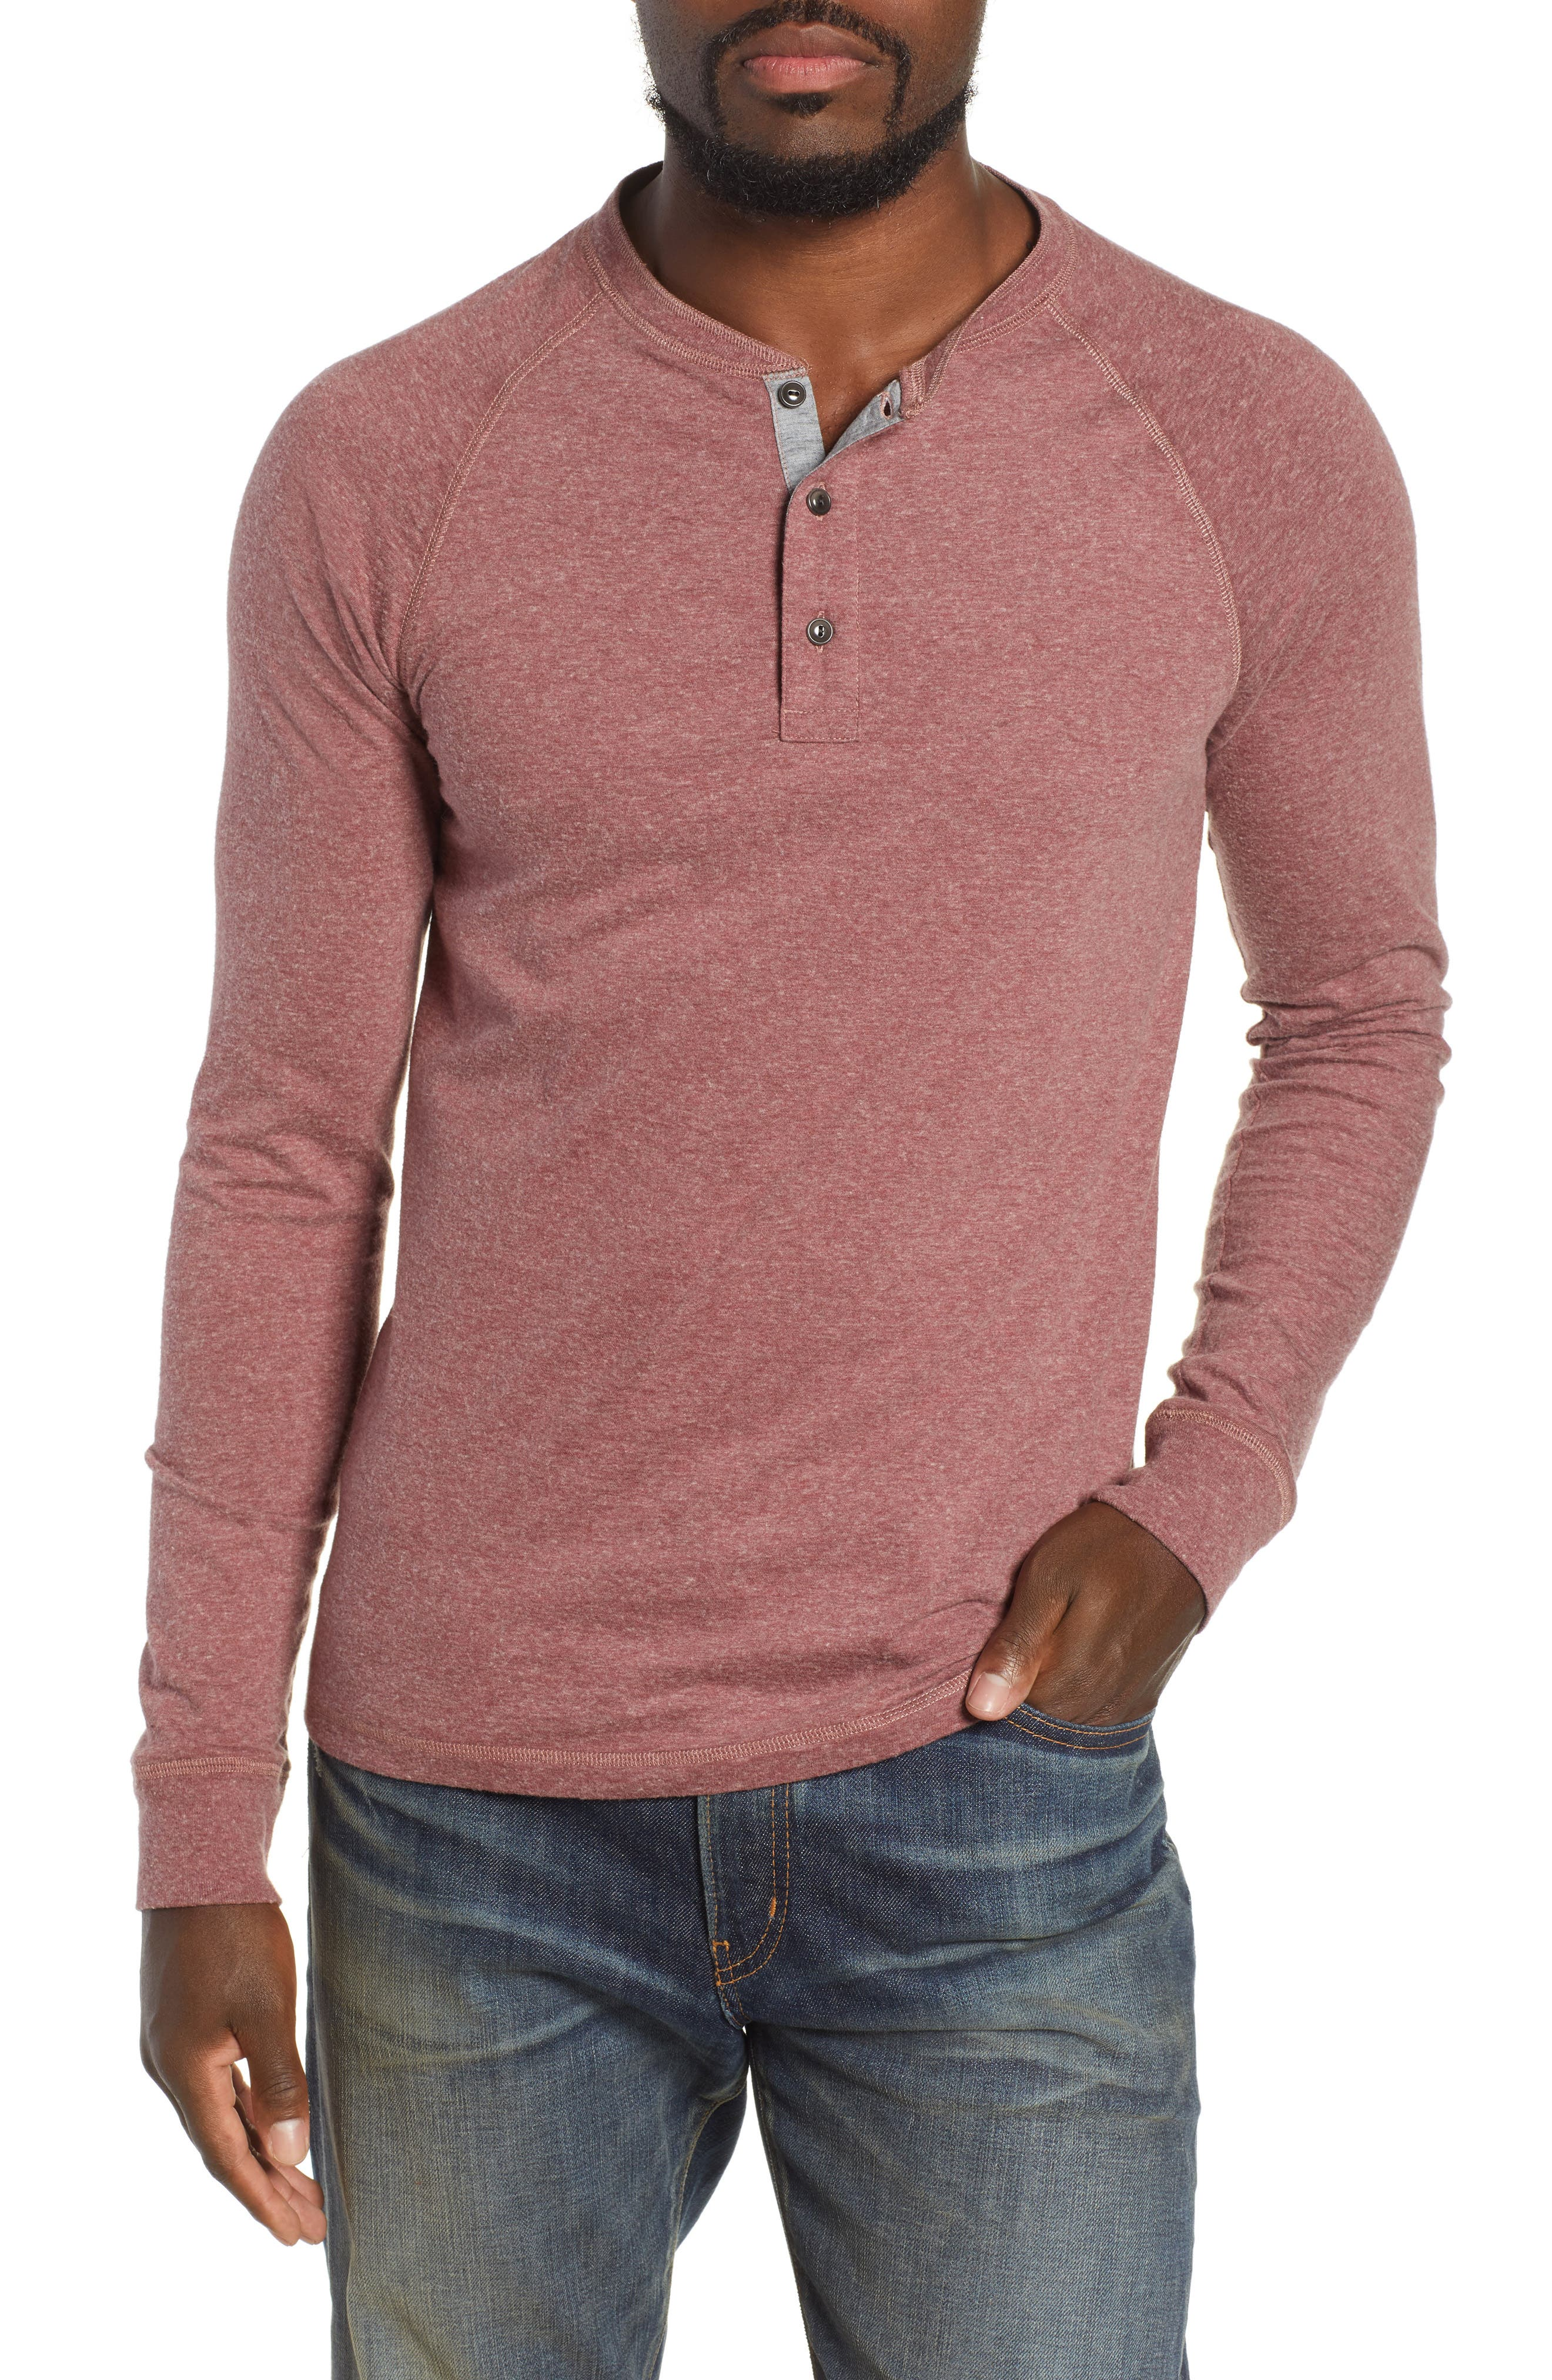 Luxe Heather Knit Organic Cotton Henley,                             Main thumbnail 1, color,                             BURGUNDY